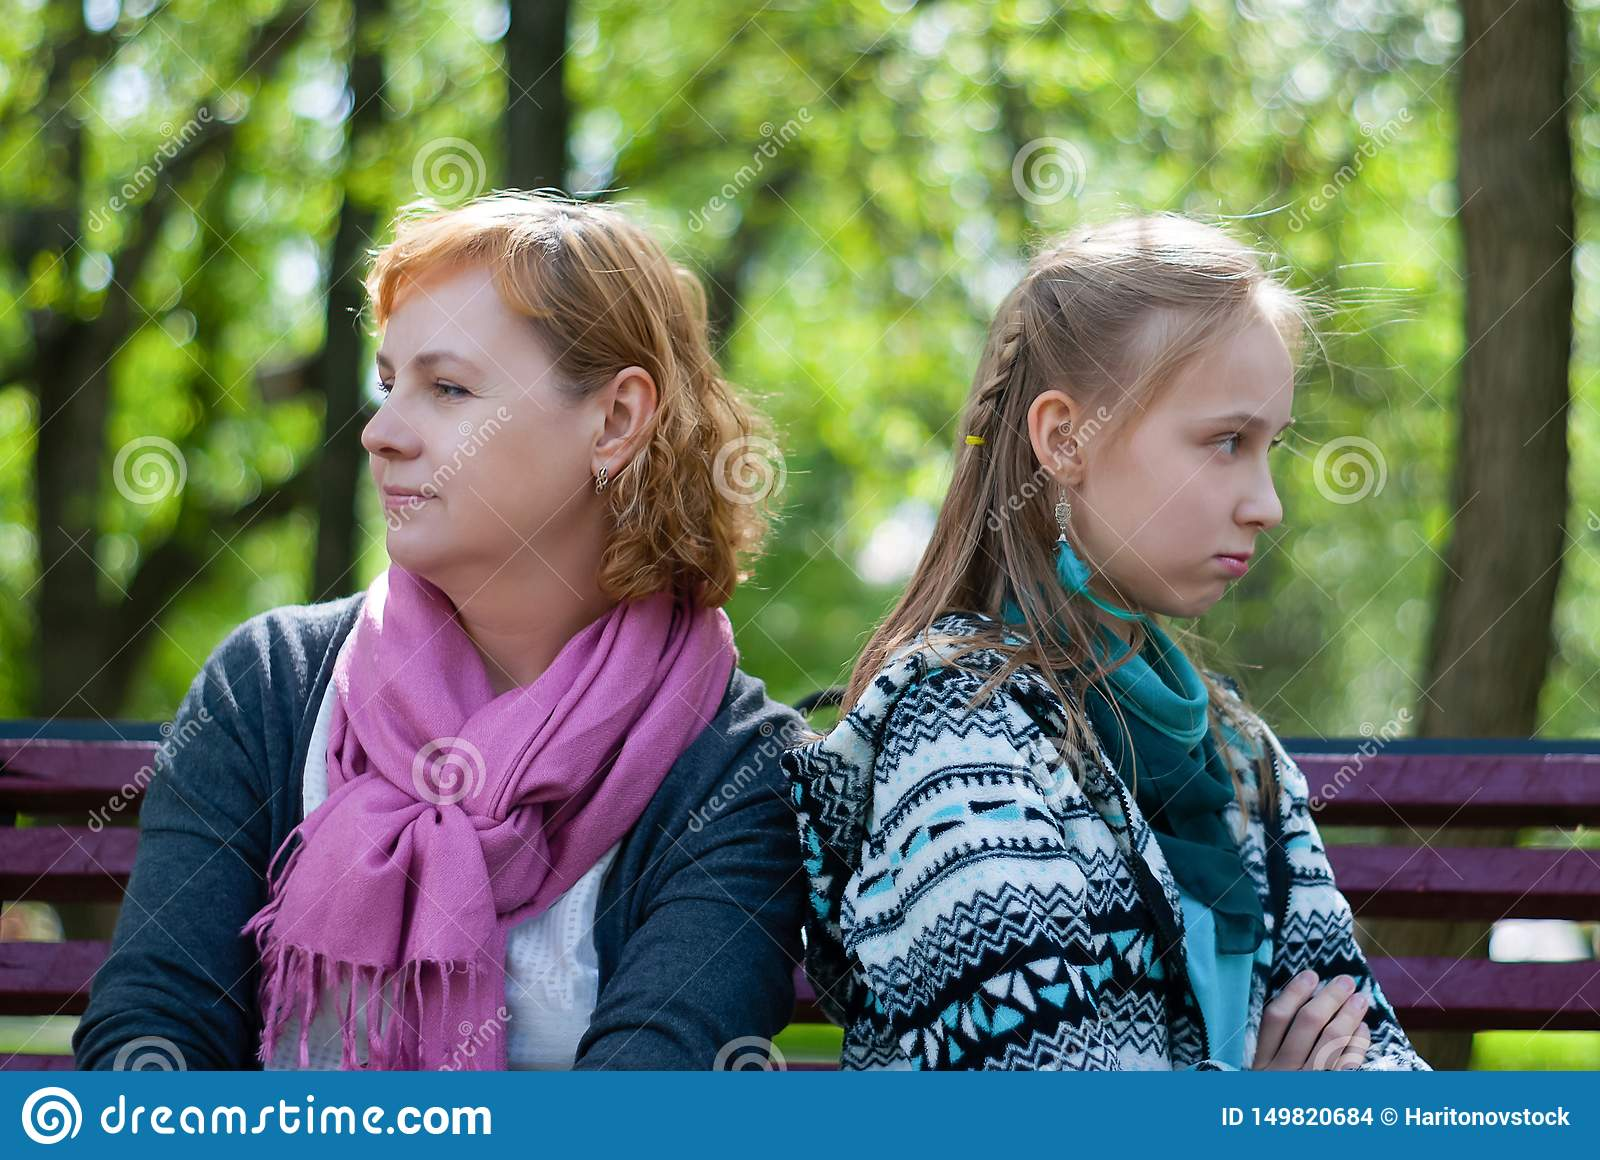 Relationship Problems Of Children And Parents Stock Photo